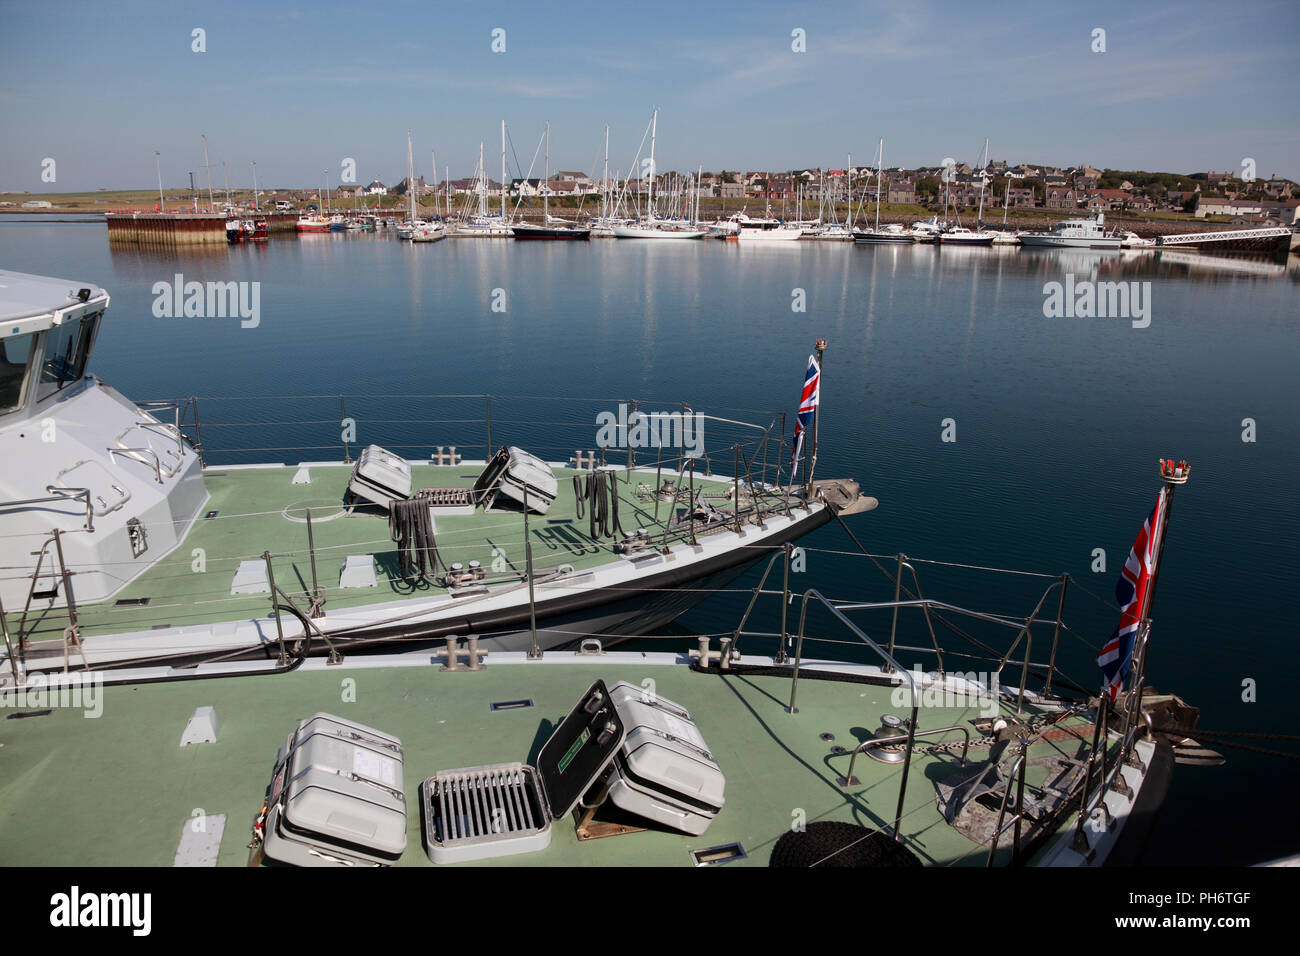 Boats in Kirkwall harbour, including Archer class Royal Navy fast training boats in the foreground, Orkney, Scotland - Stock Image